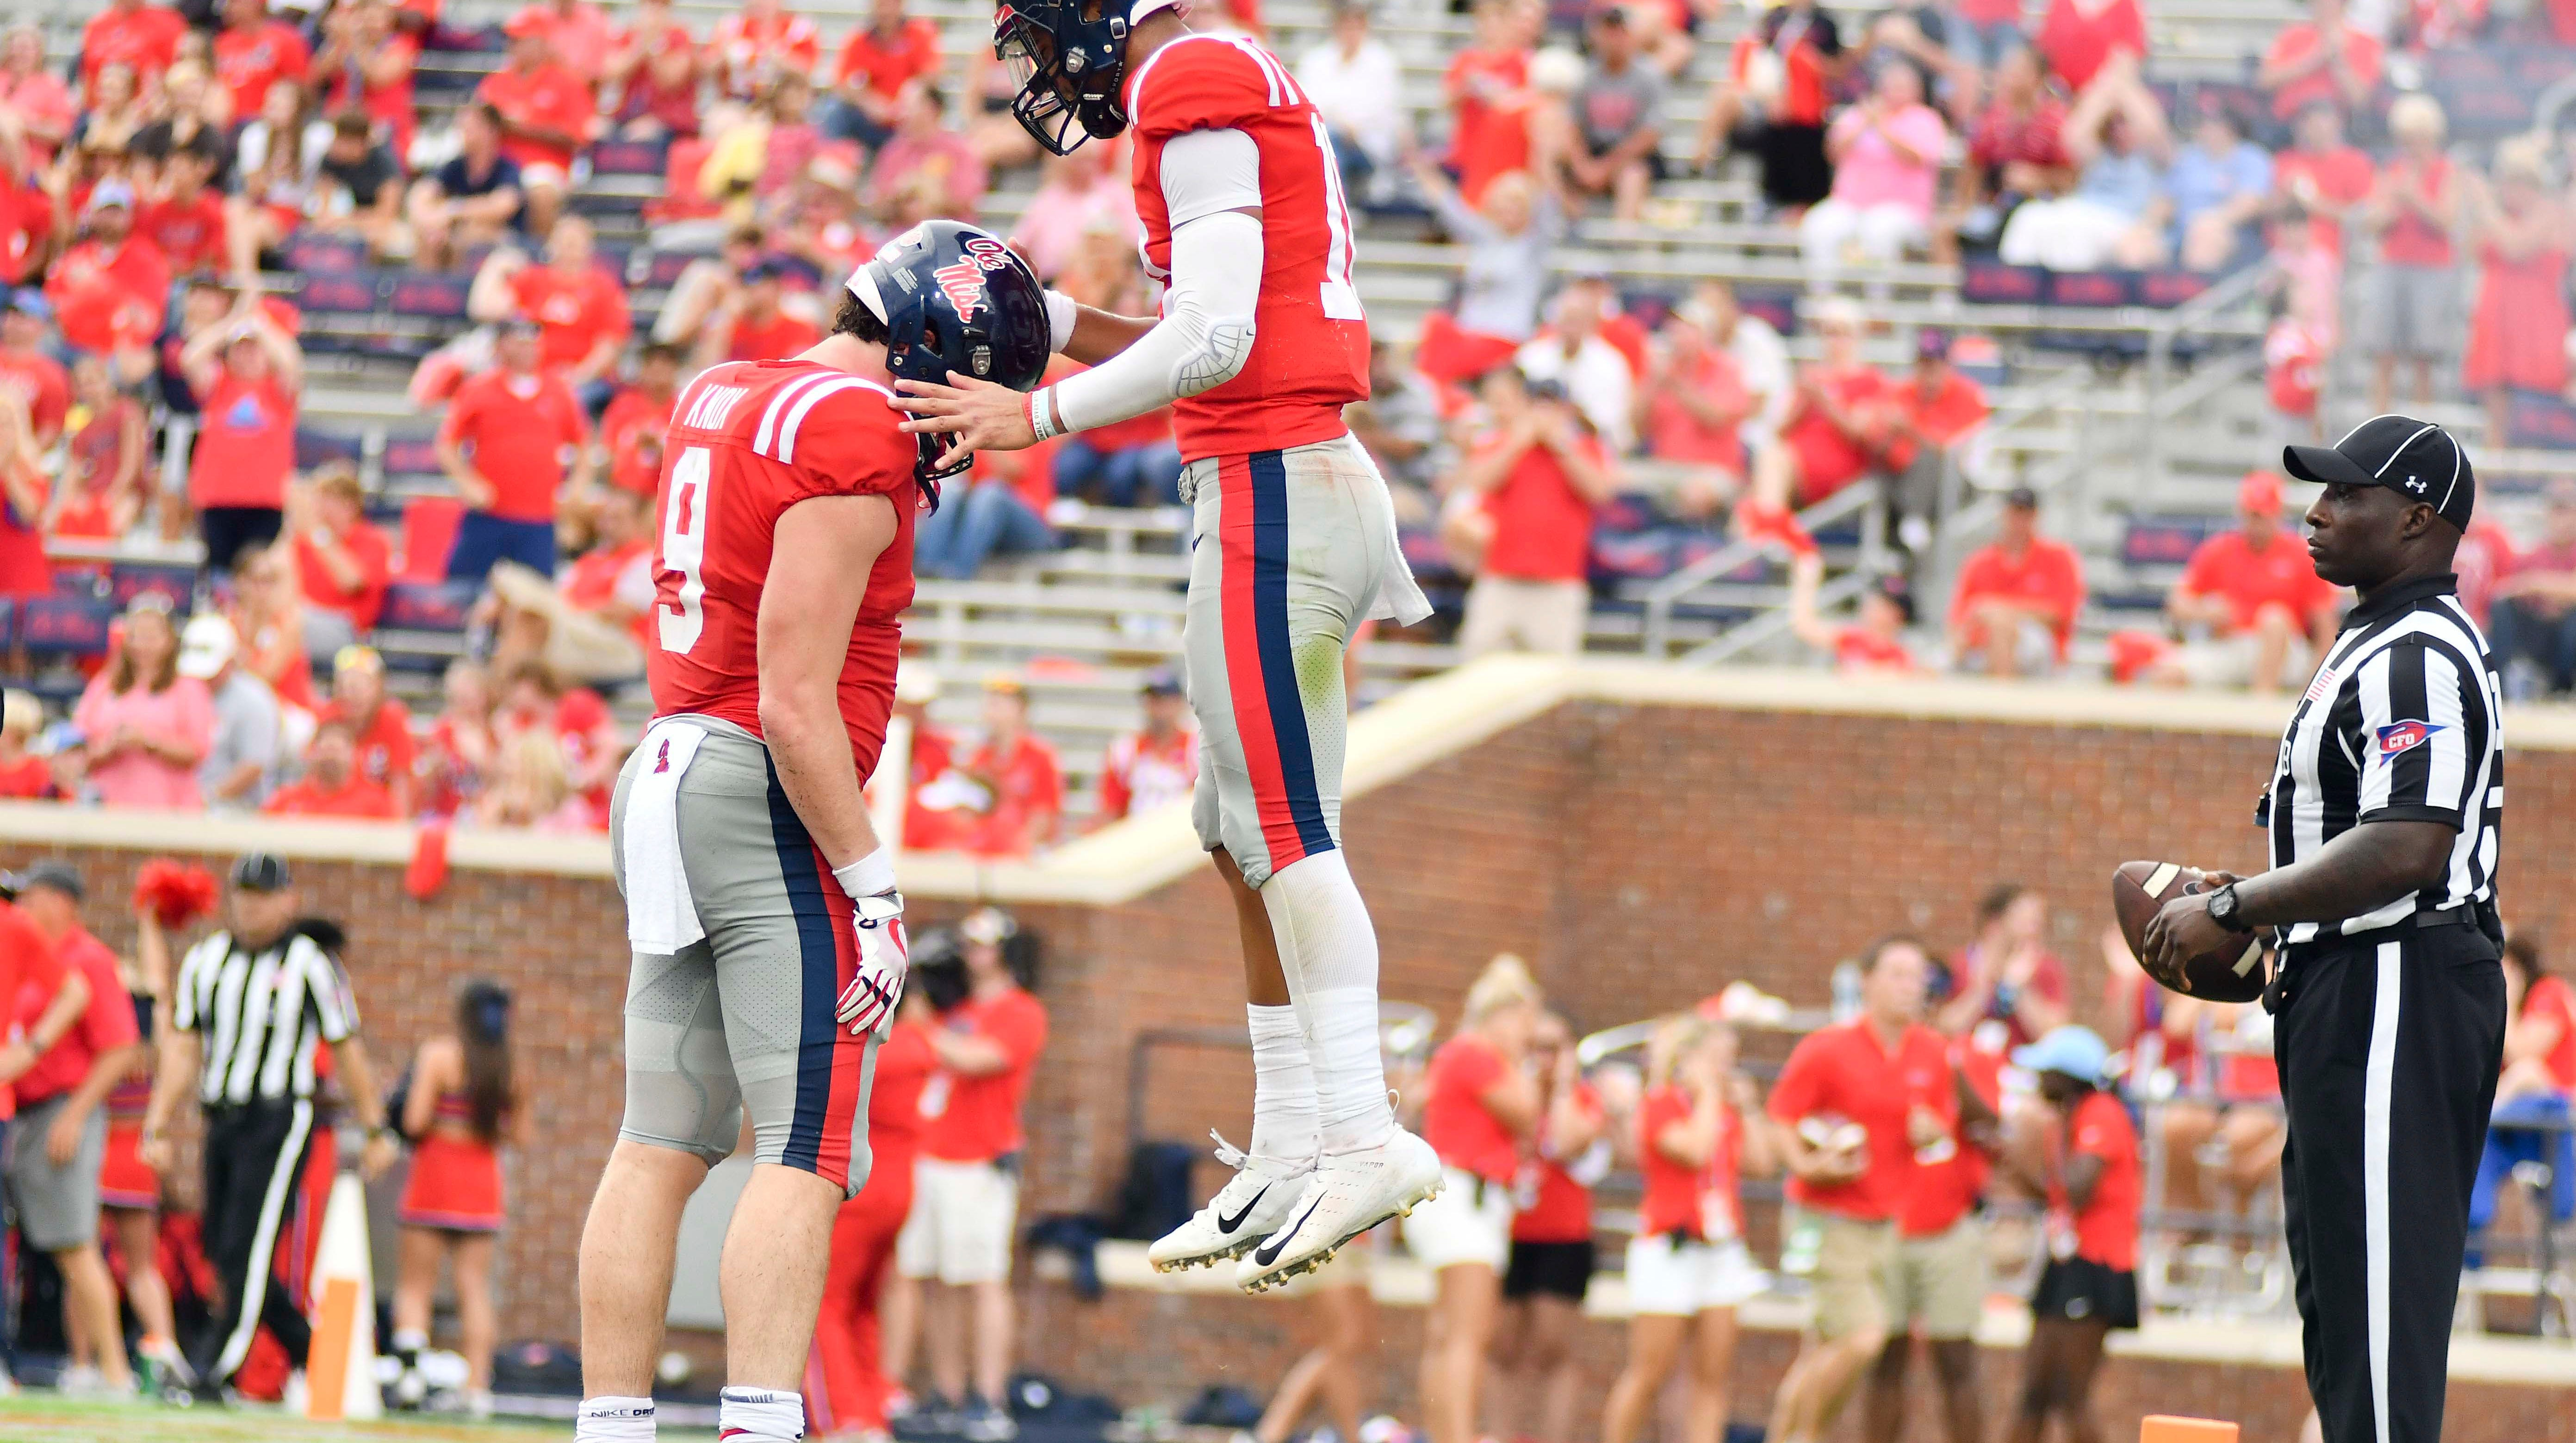 Sep 22, 2018; Oxford, MS, USA; Mississippi Rebels quarterback Jordan Ta'amu (10) reacts with tight end Dawson Knox (9) after a touchdown against the Kent State Golden Flashes during the fourth quarter at Vaught-Hemingway Stadium. Mandatory Credit: Matt Bush-USA TODAY Sports